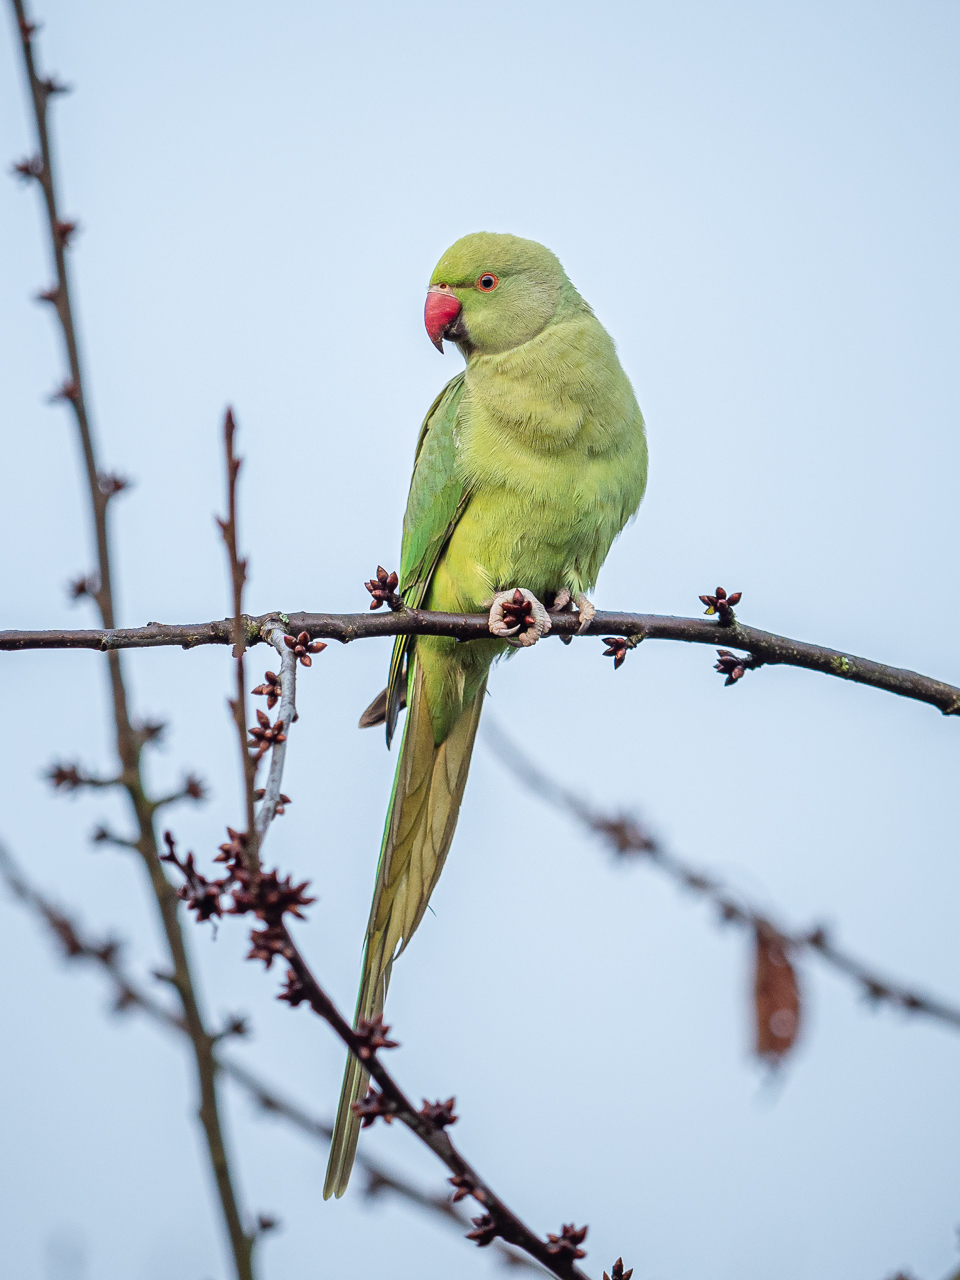 A feral parakeet (Psittacula krameri) seen at the Beddington Farmlands Nature Reserve, Sutton, London.